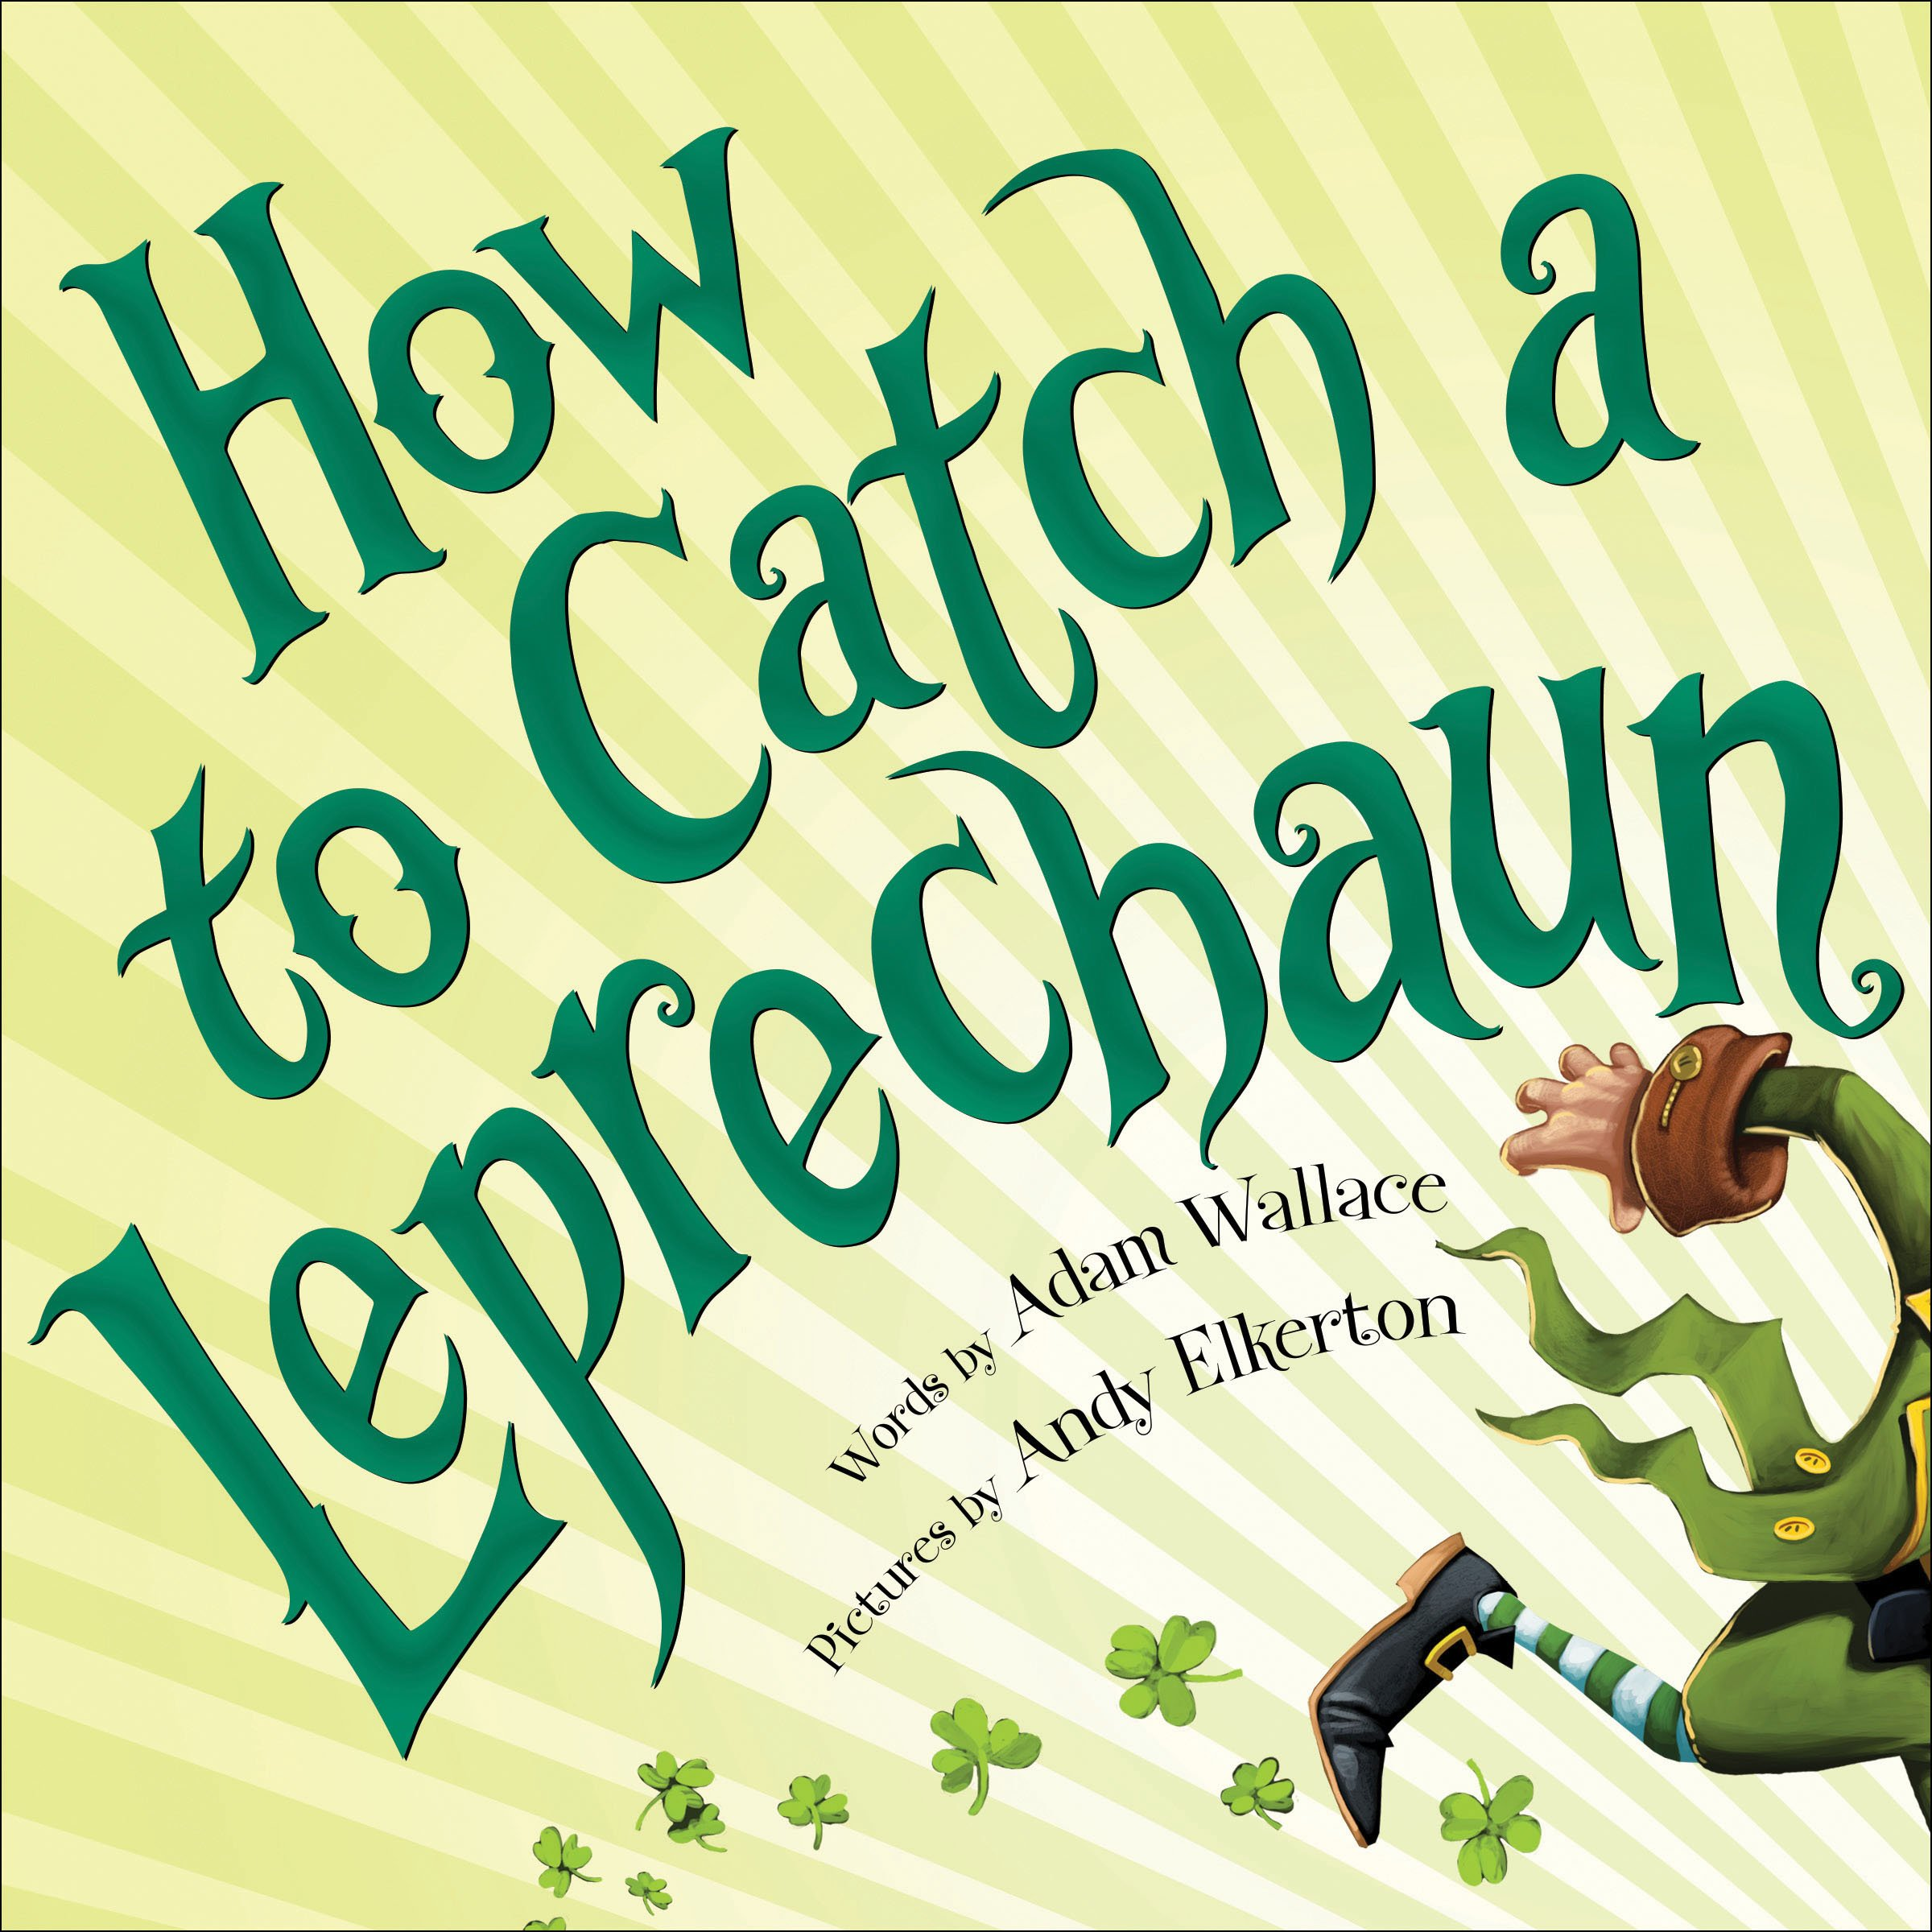 how to catch a leprechaun.jpg